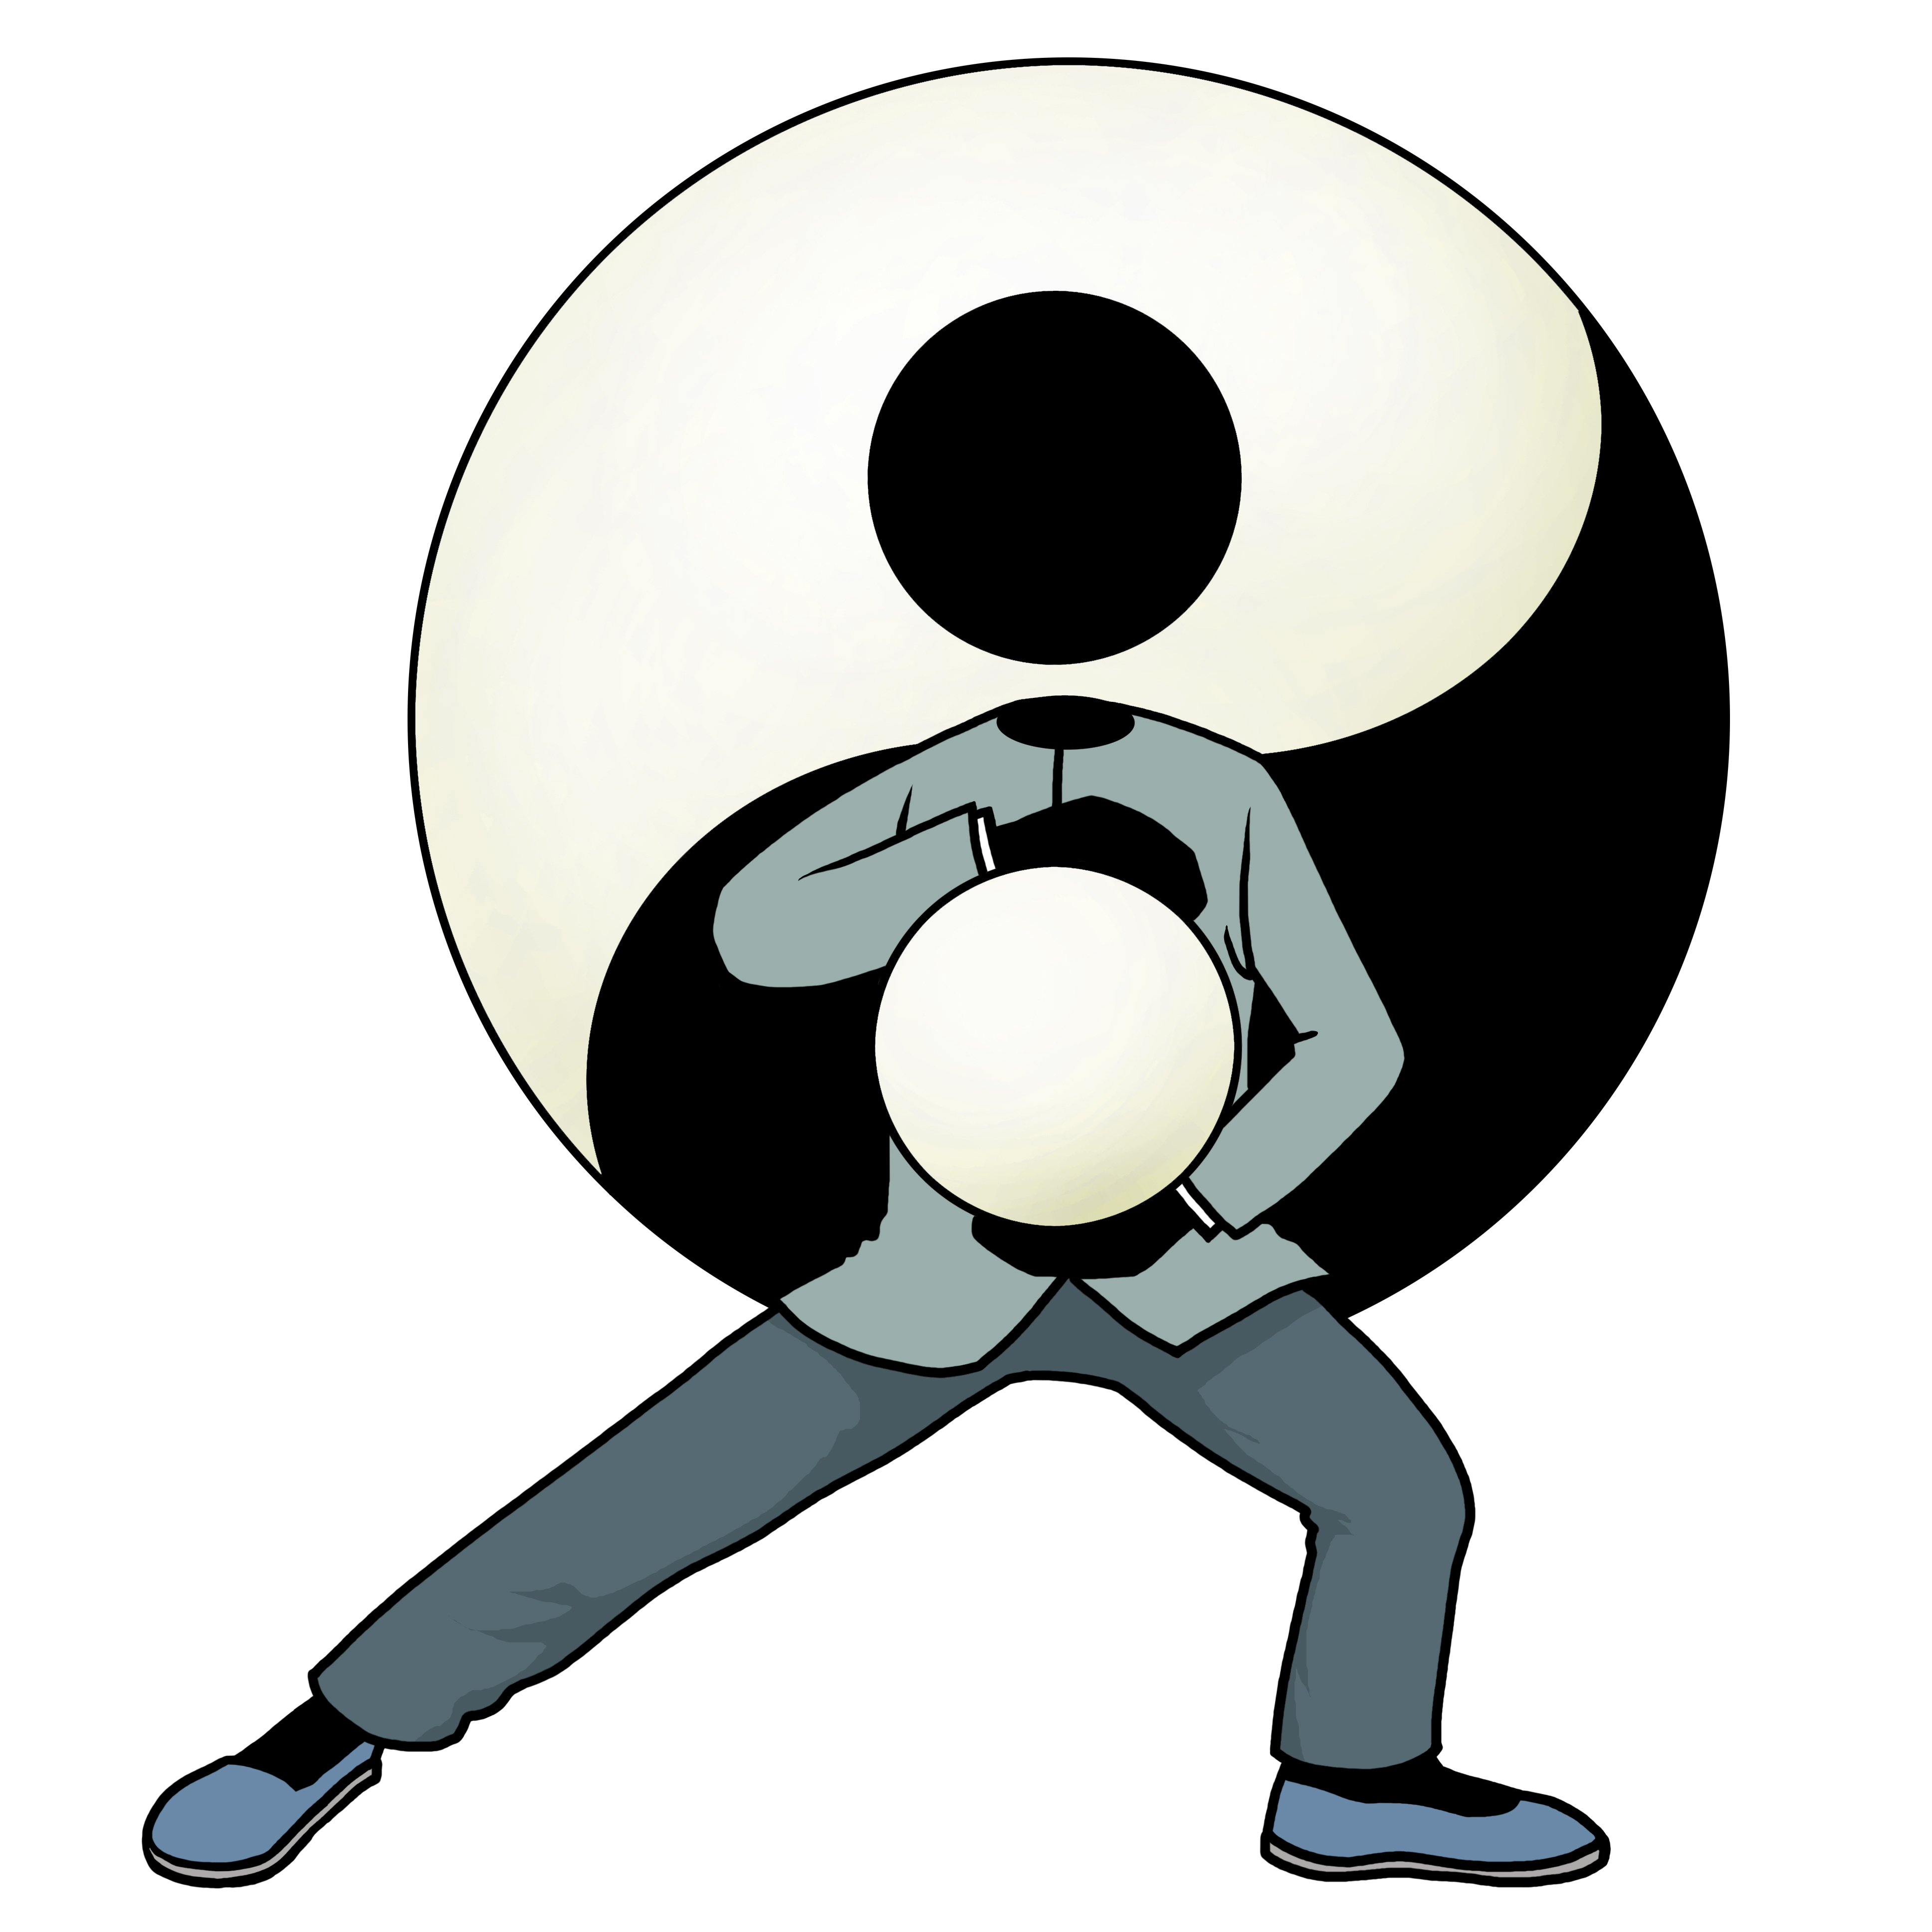 How tai chi links to western models of medicine